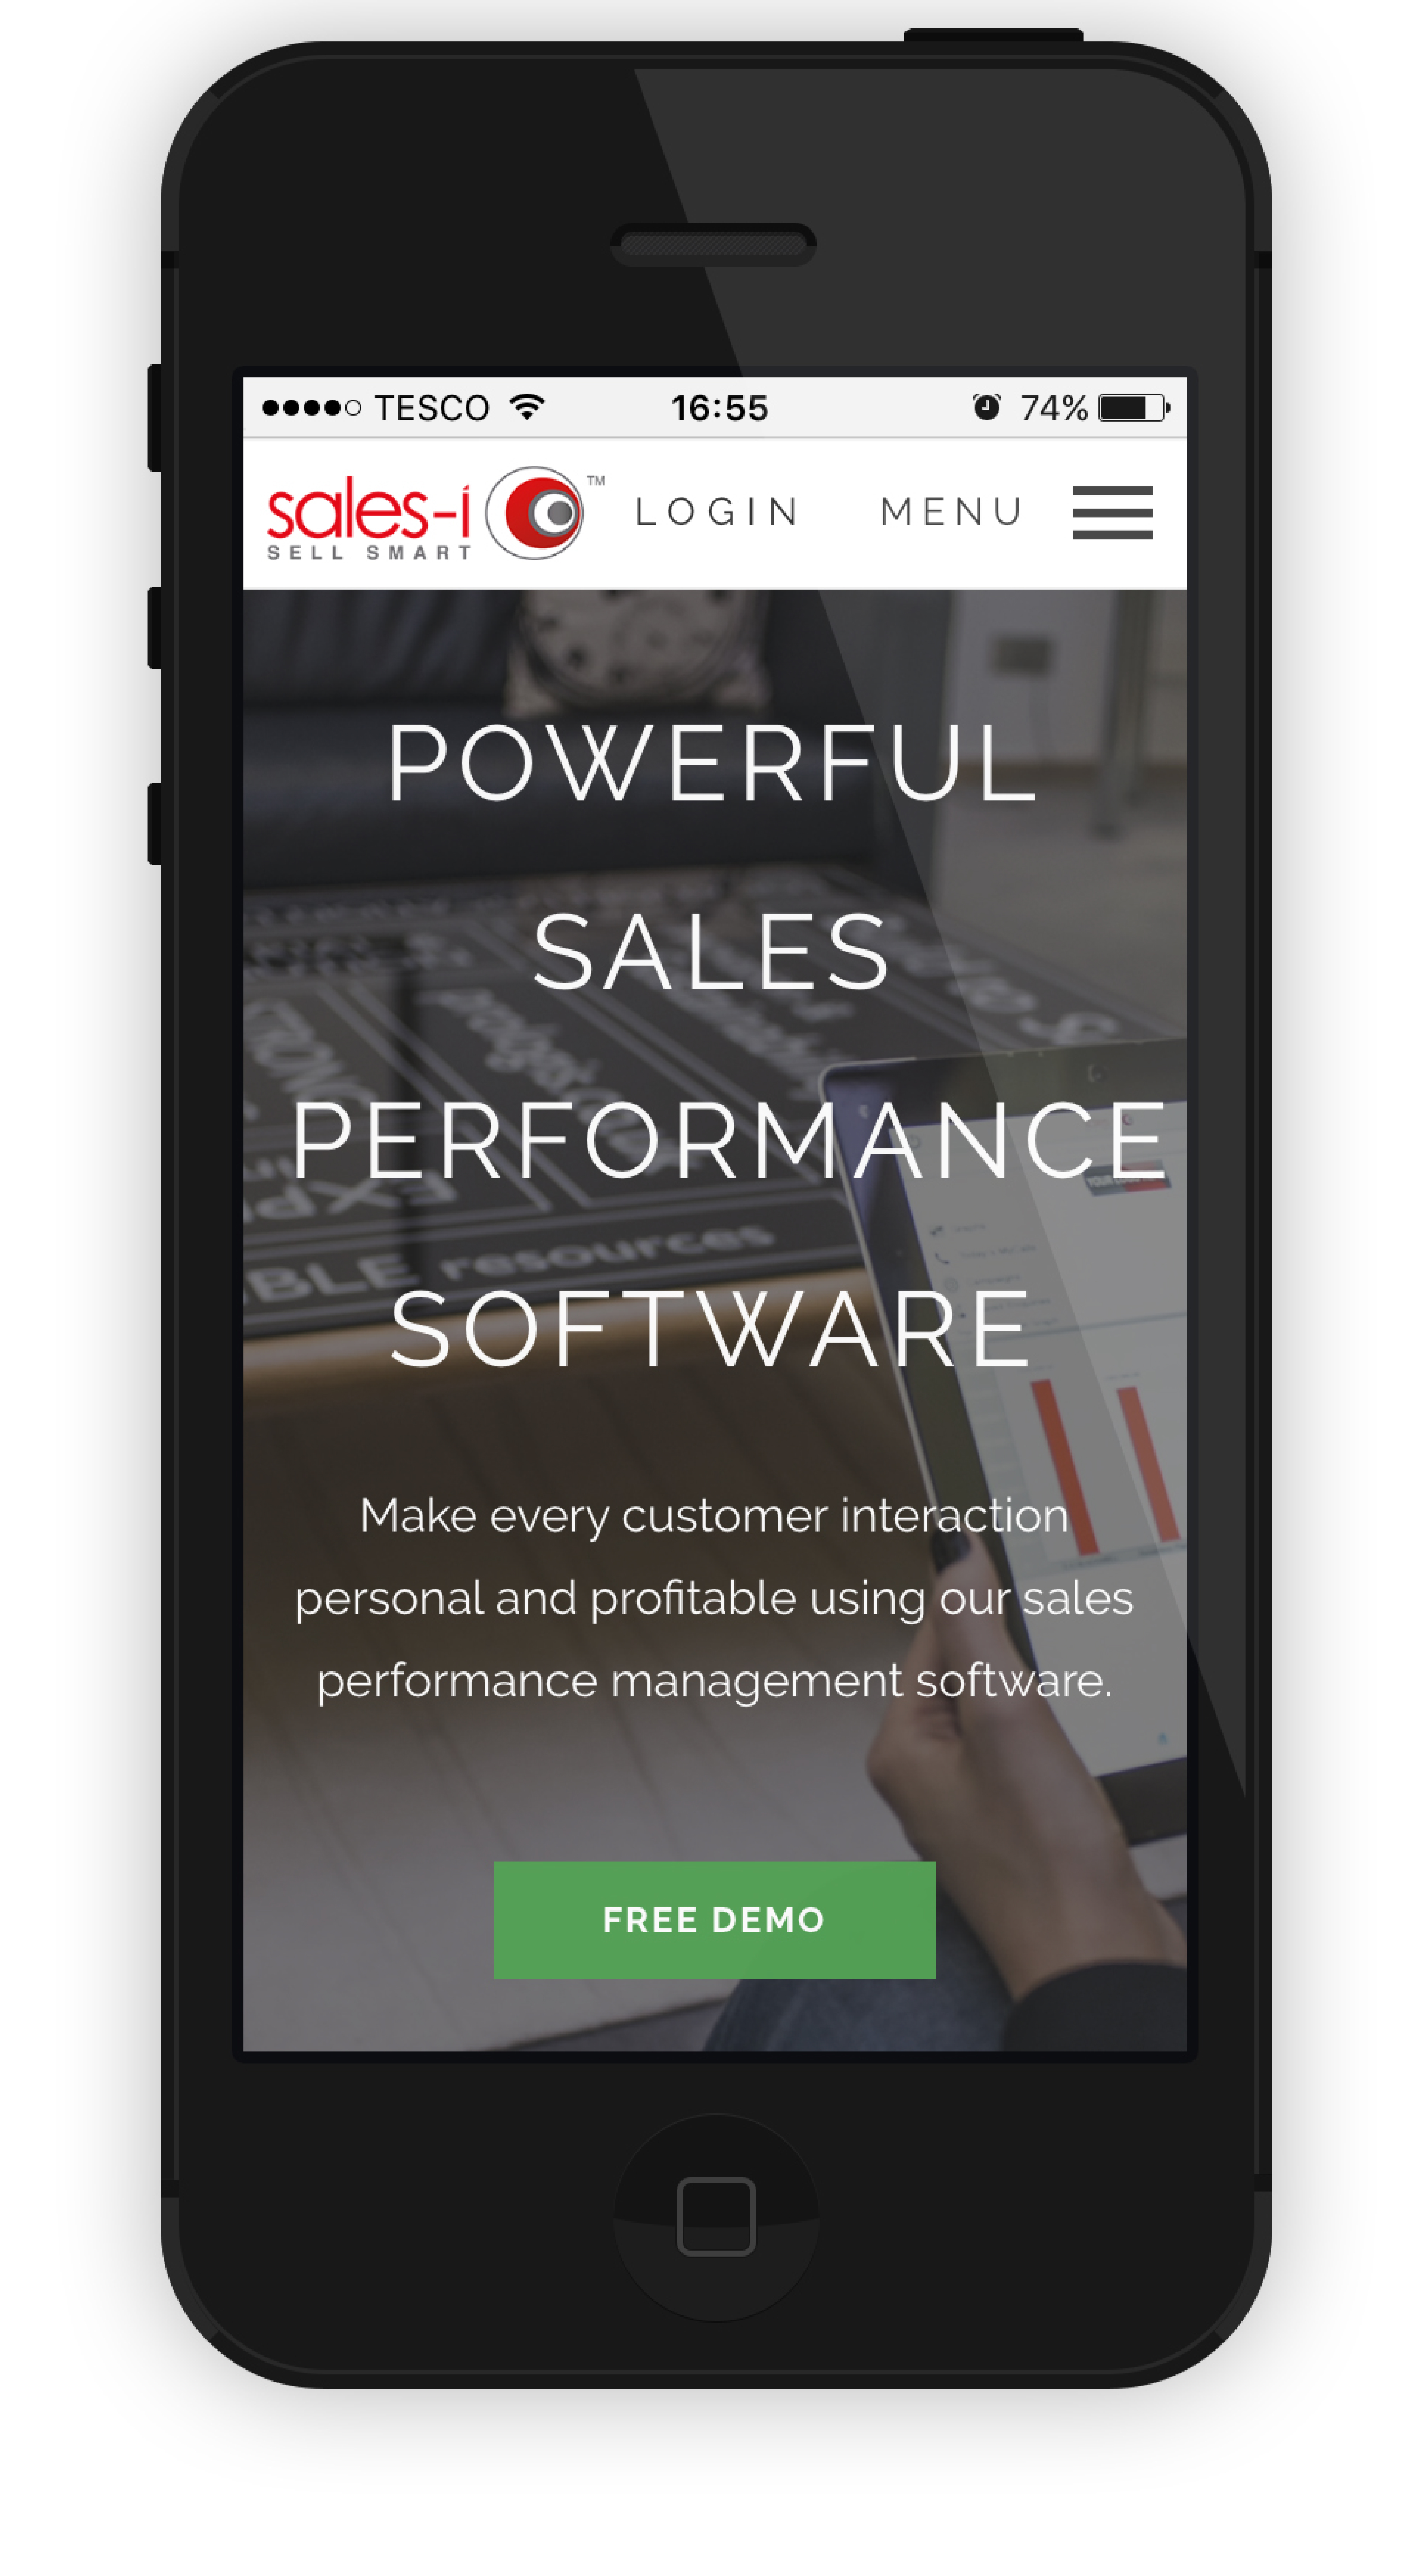 sales-i on a smartphone